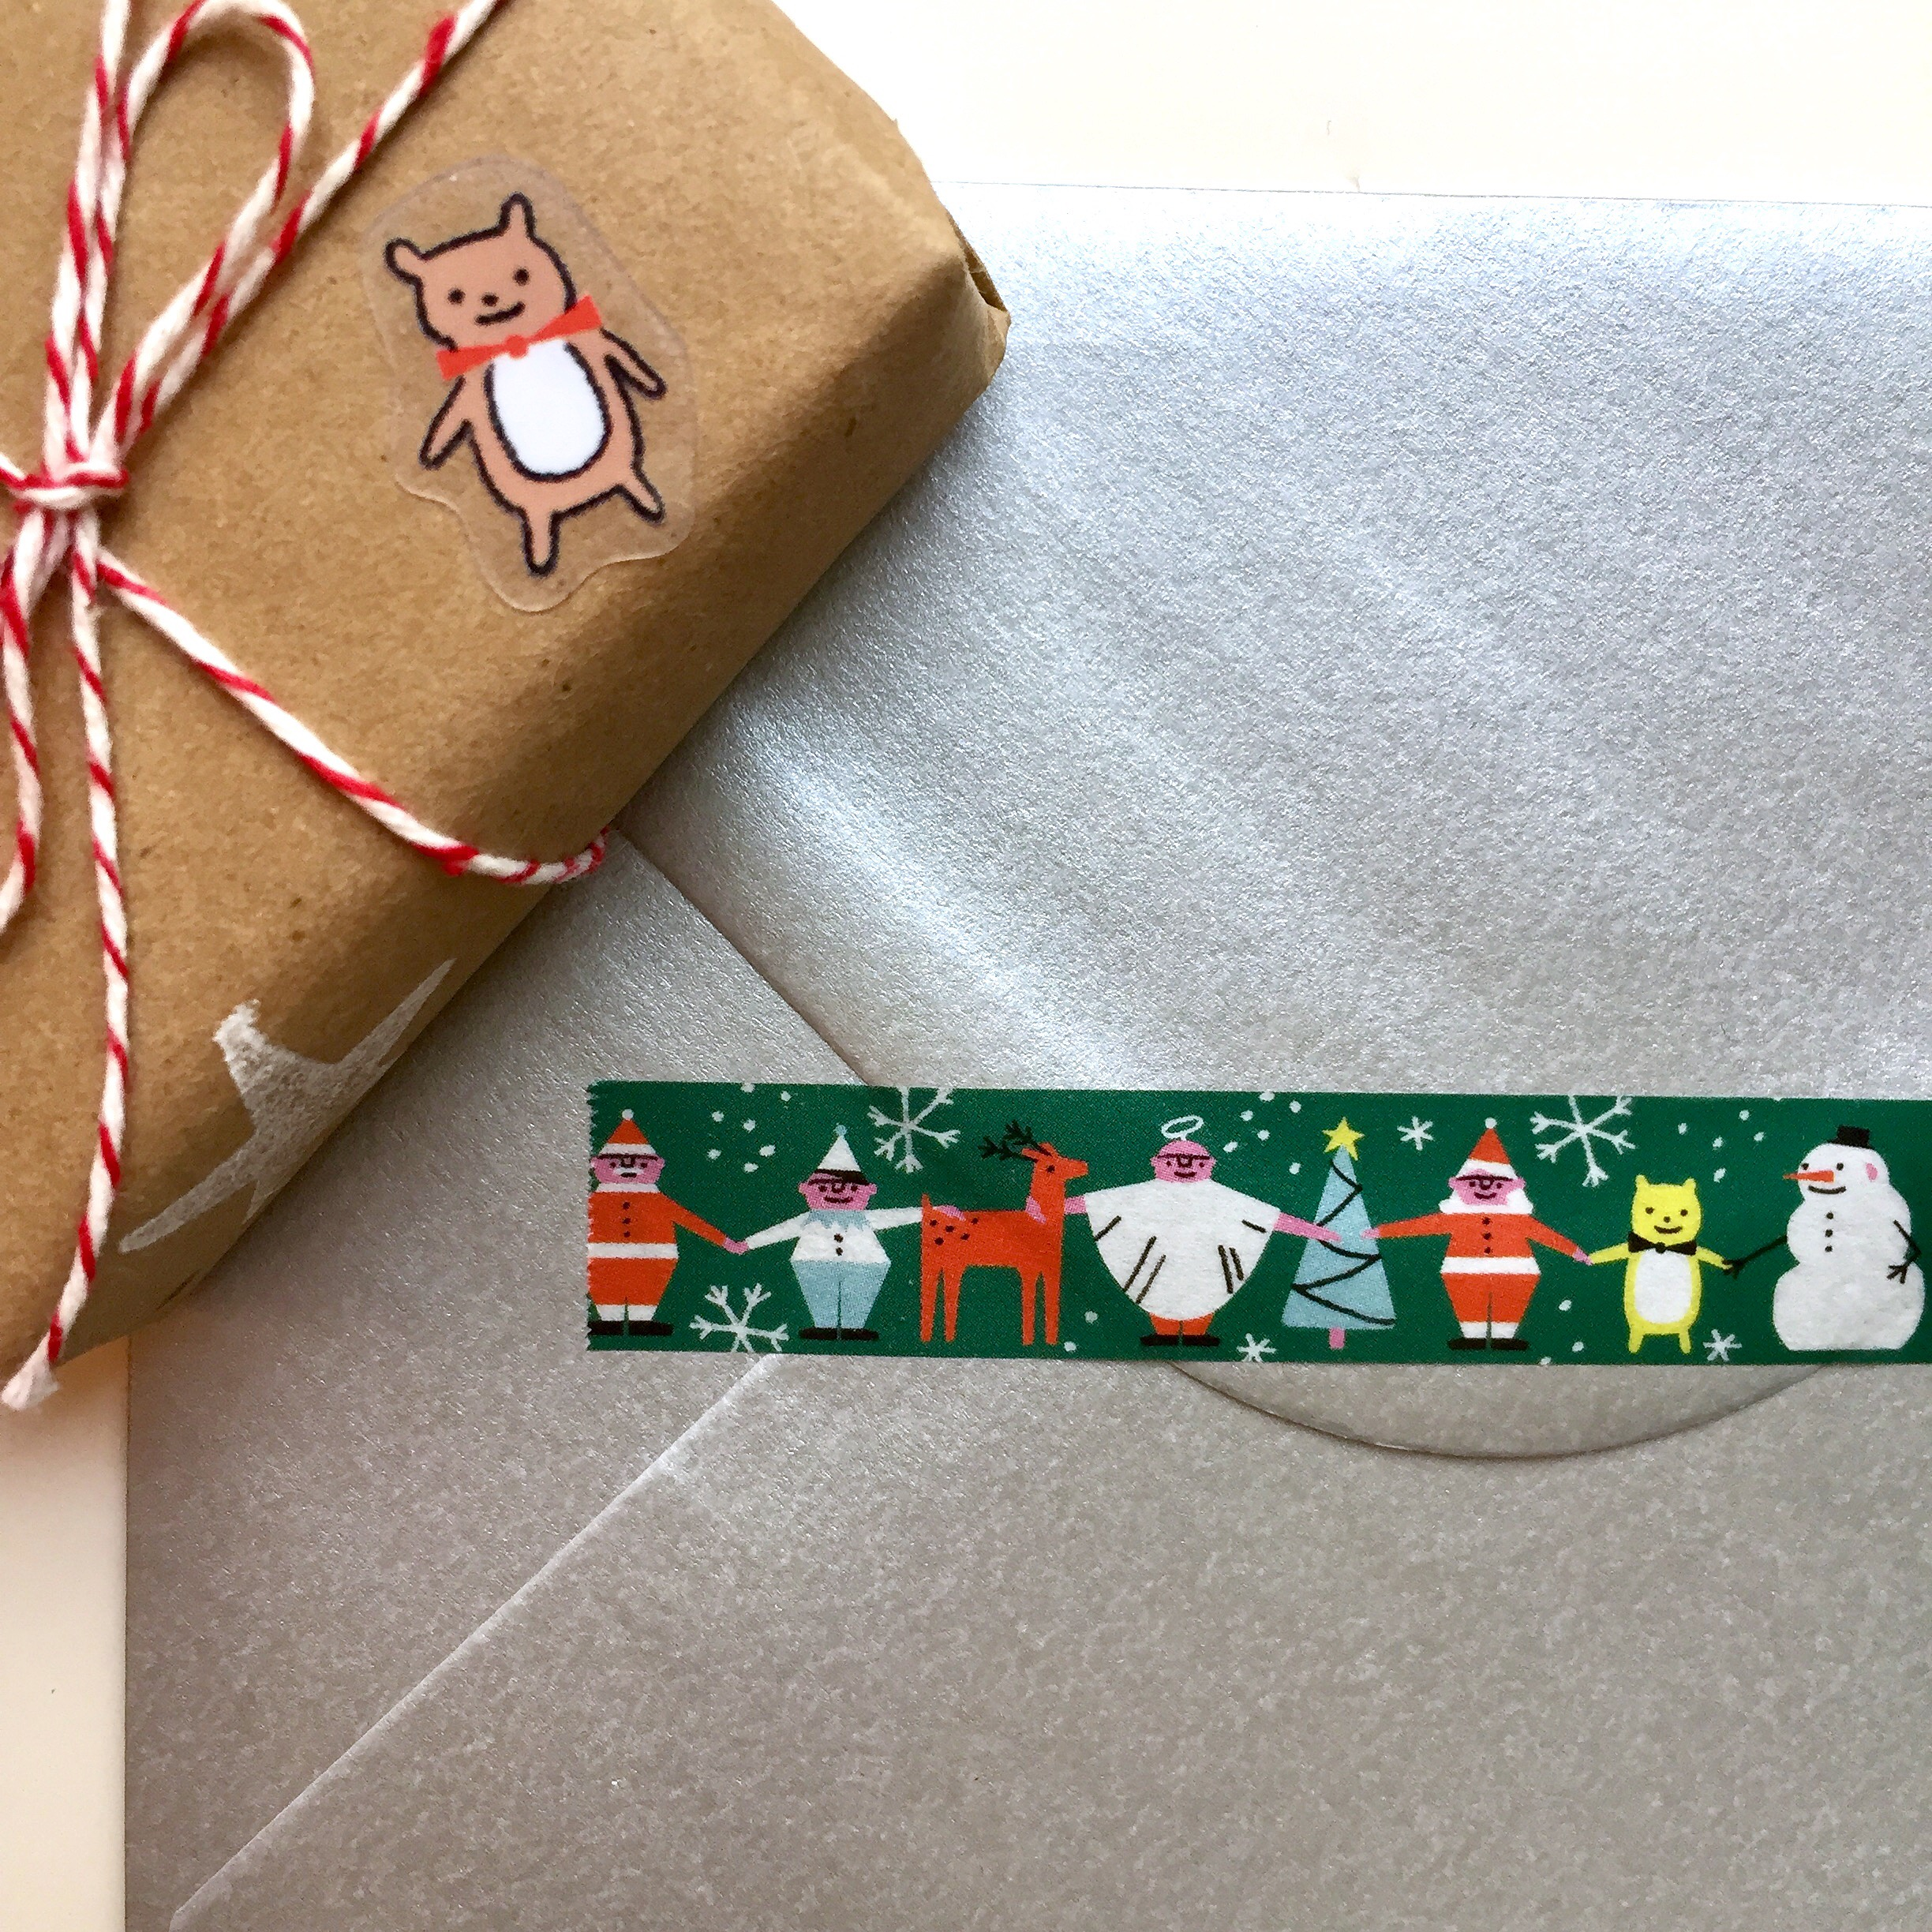 Christmas Washi Tape by Lindsey Balbierz